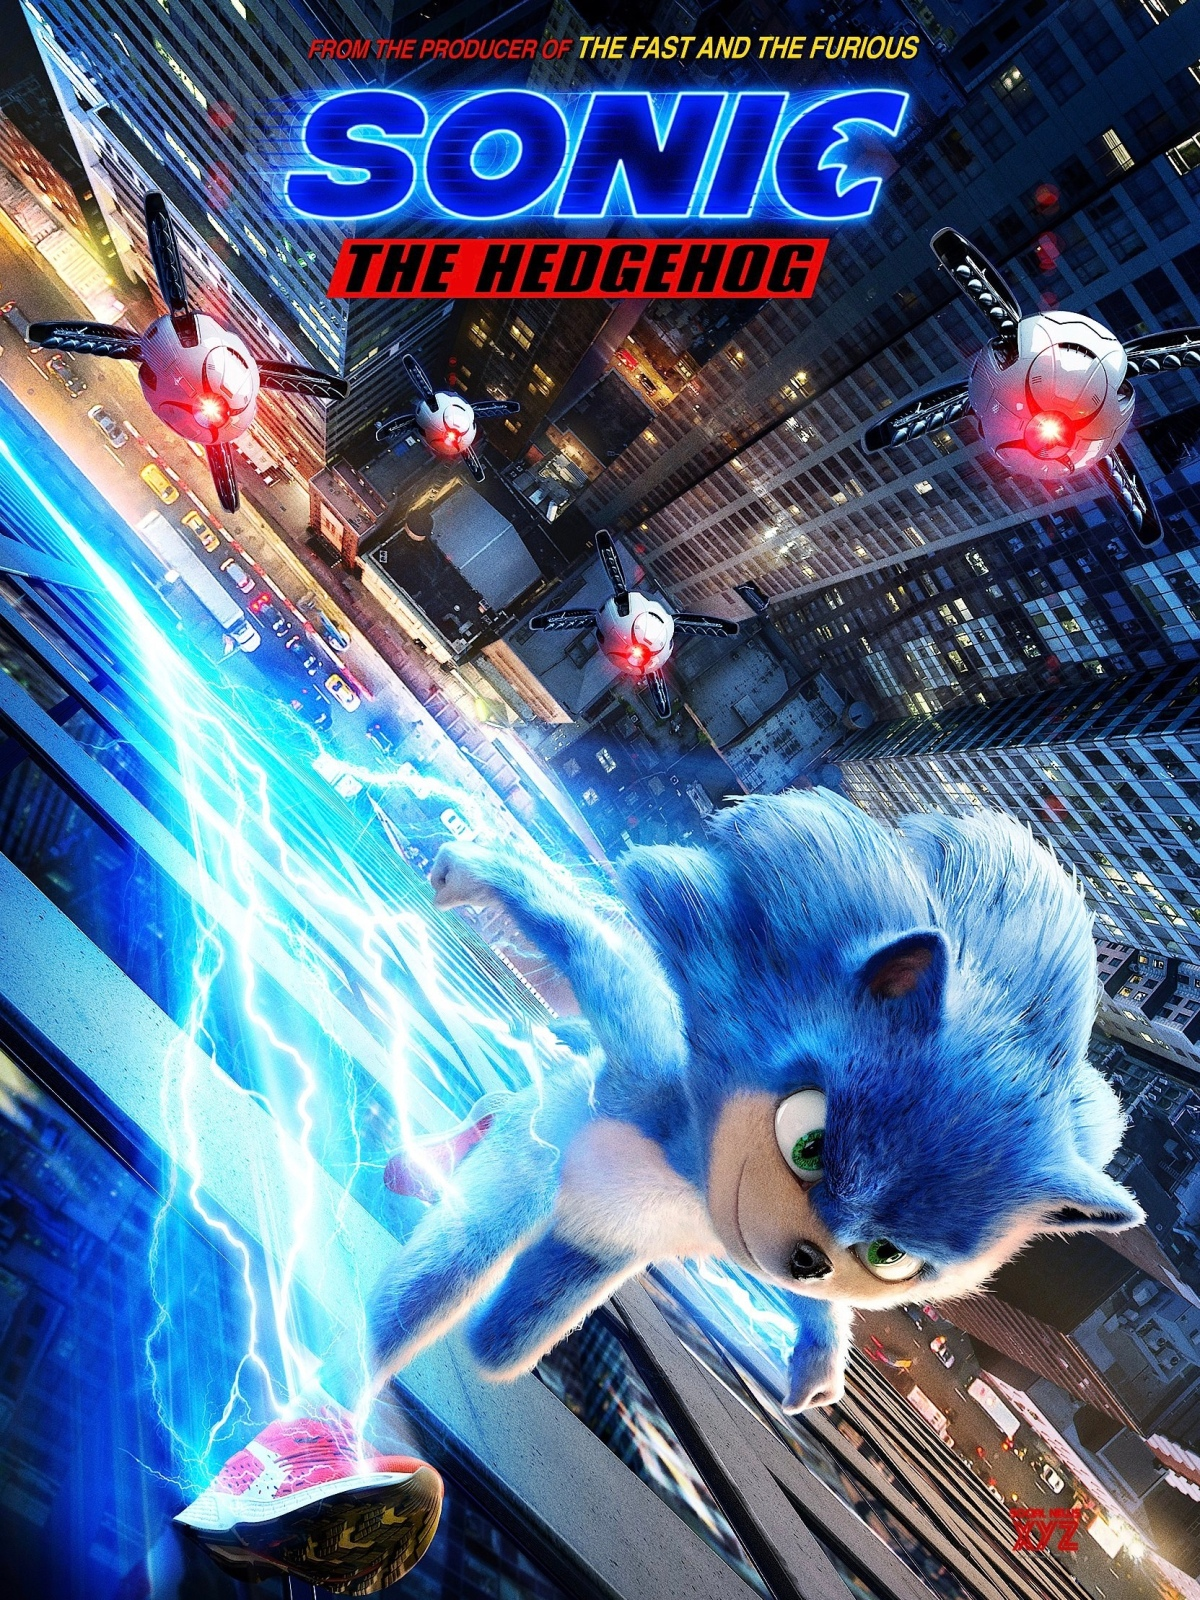 """""""Sonic the Hedgehog"""": One-SentenceReview"""